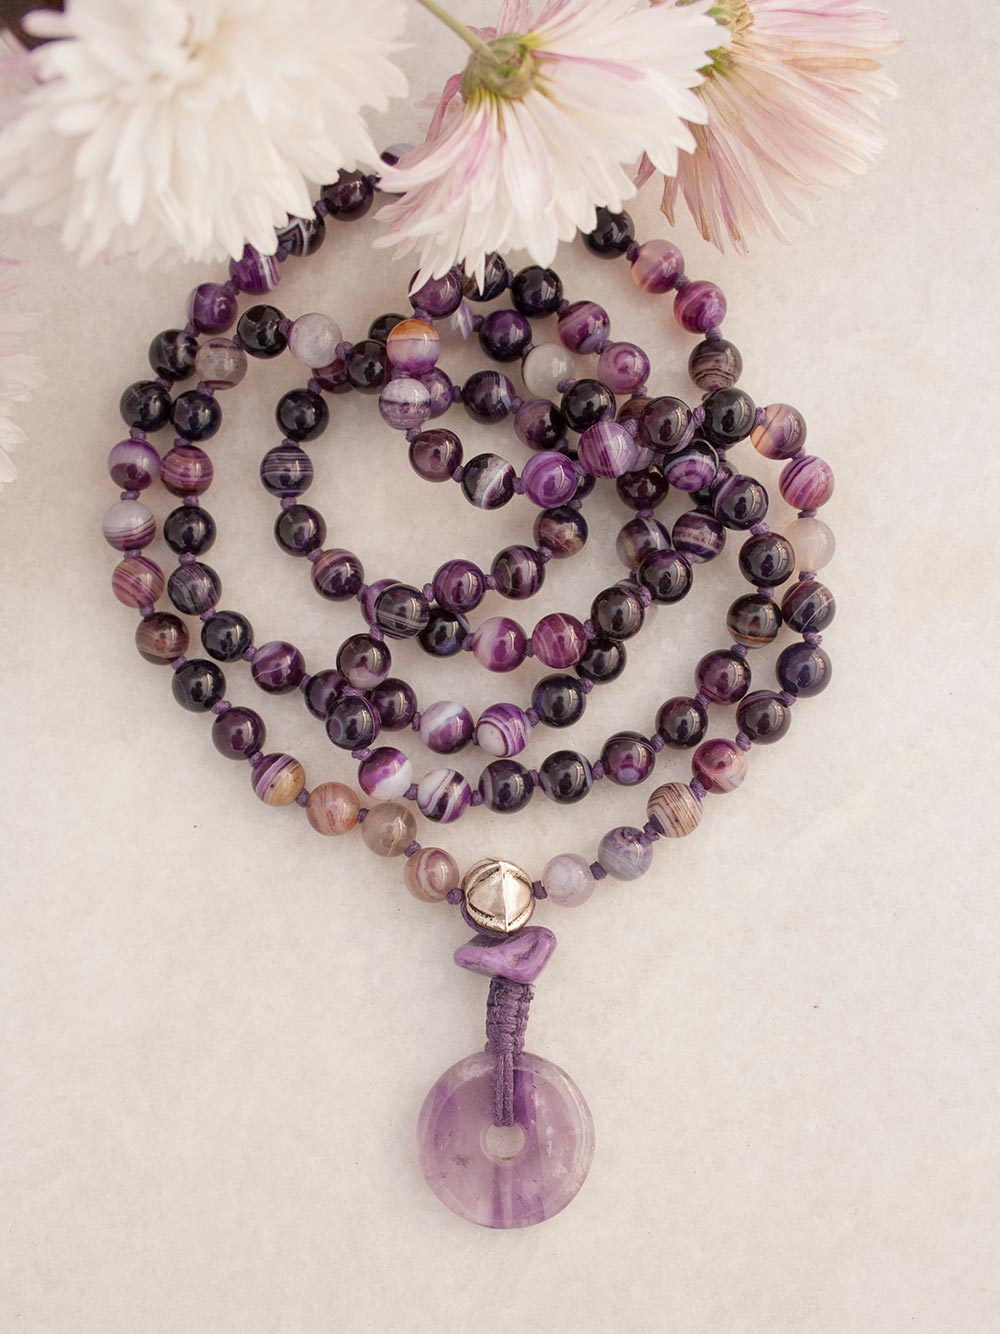 The Aquarius Mala in a violet twirl of Onyx & Agate, features a Guru setting in Tibetan Silver, Chinese Marble and Amethyst. Full view.